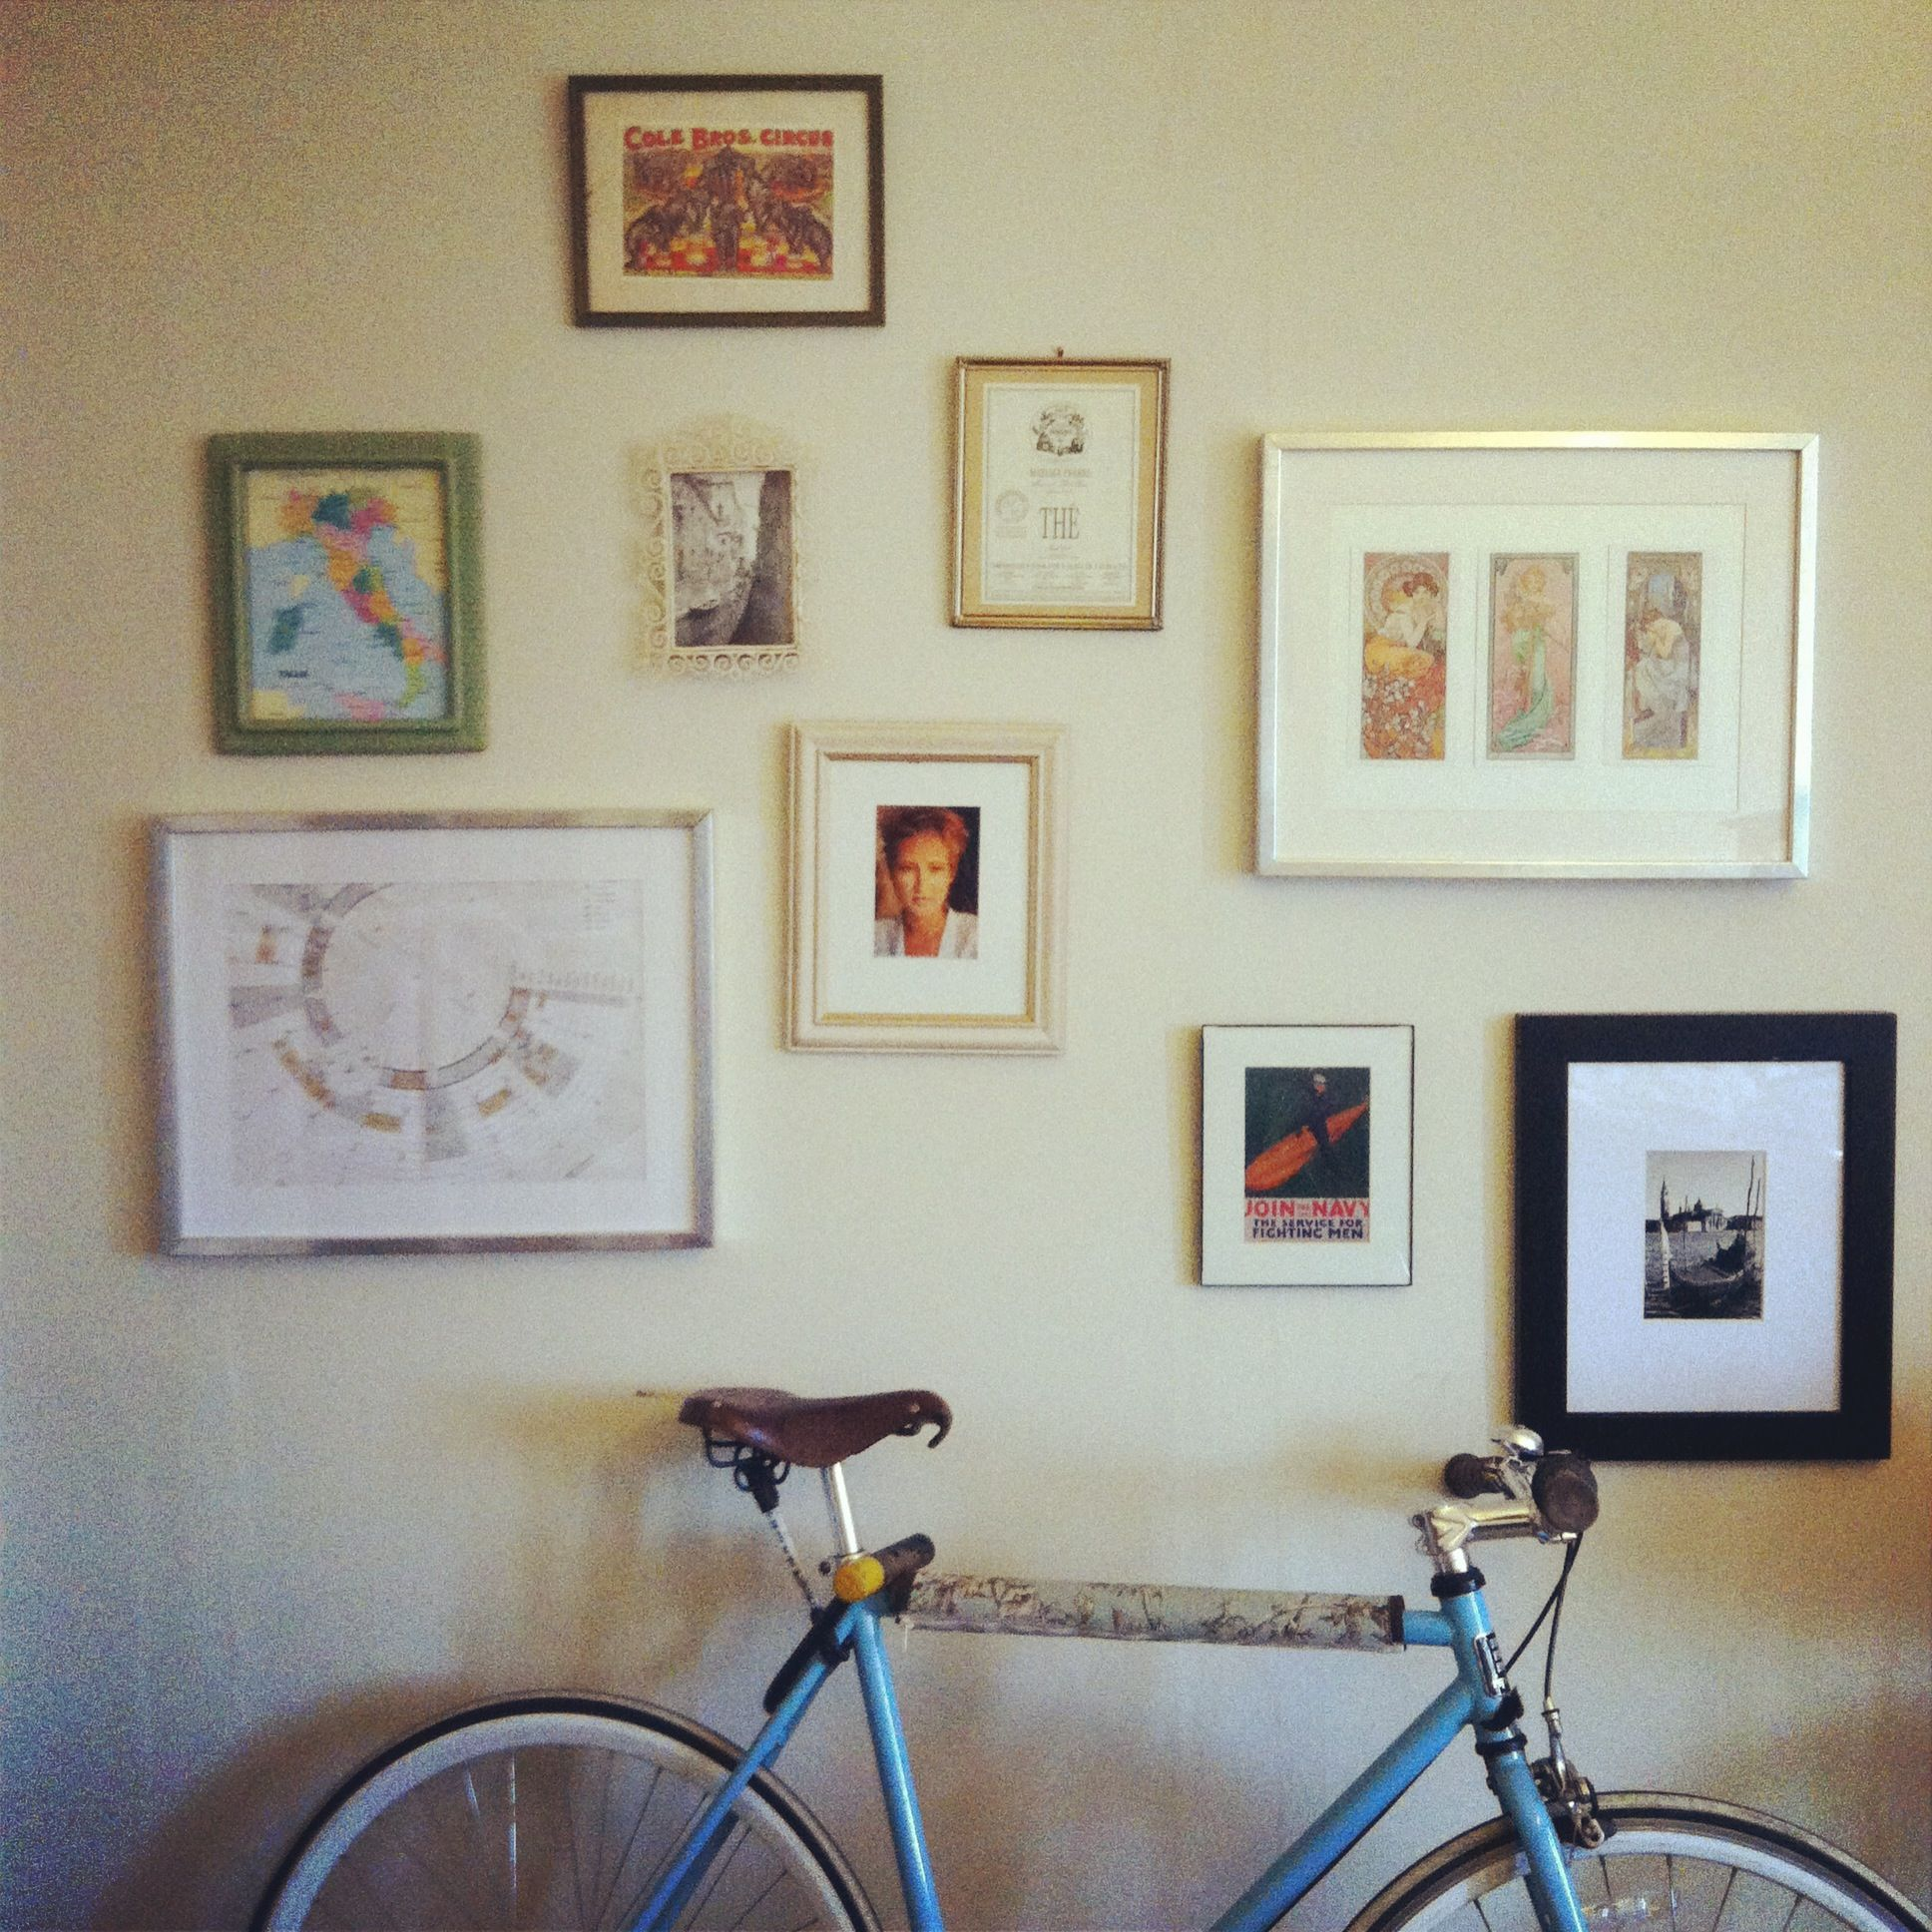 Gallery wall. Got all the frames from goodwill for under $20.